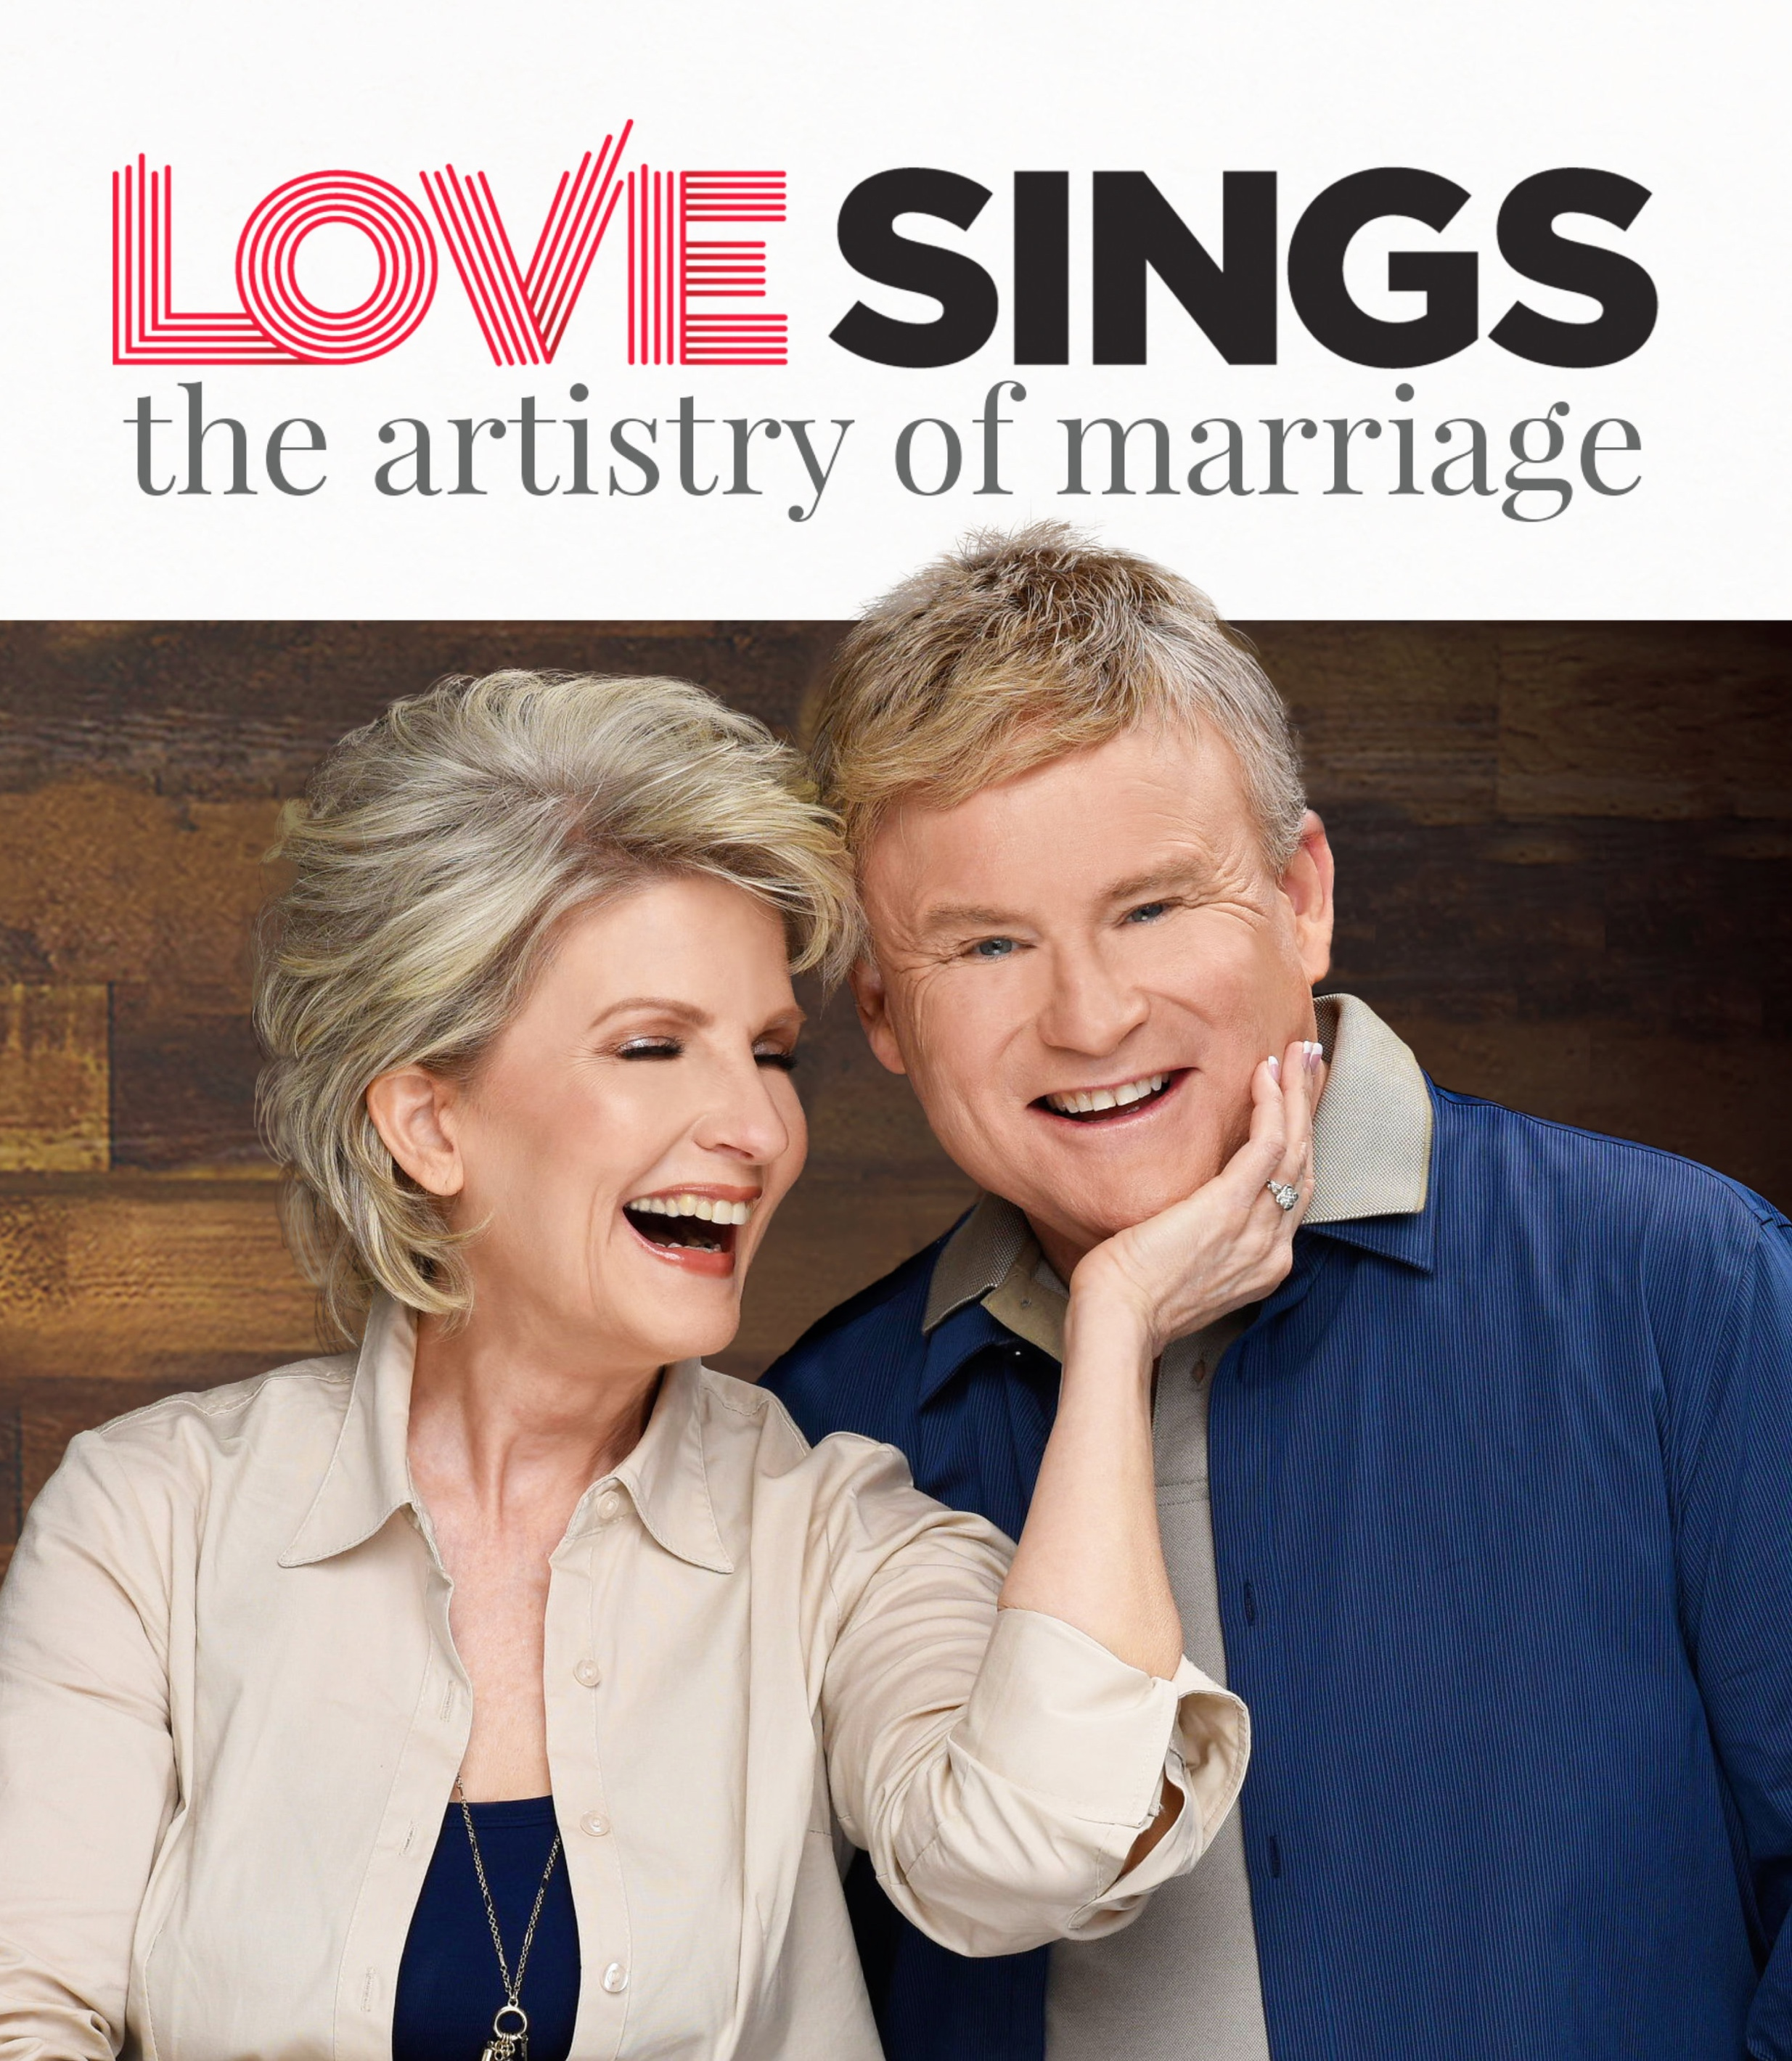 The Artistry of Marriage DVD